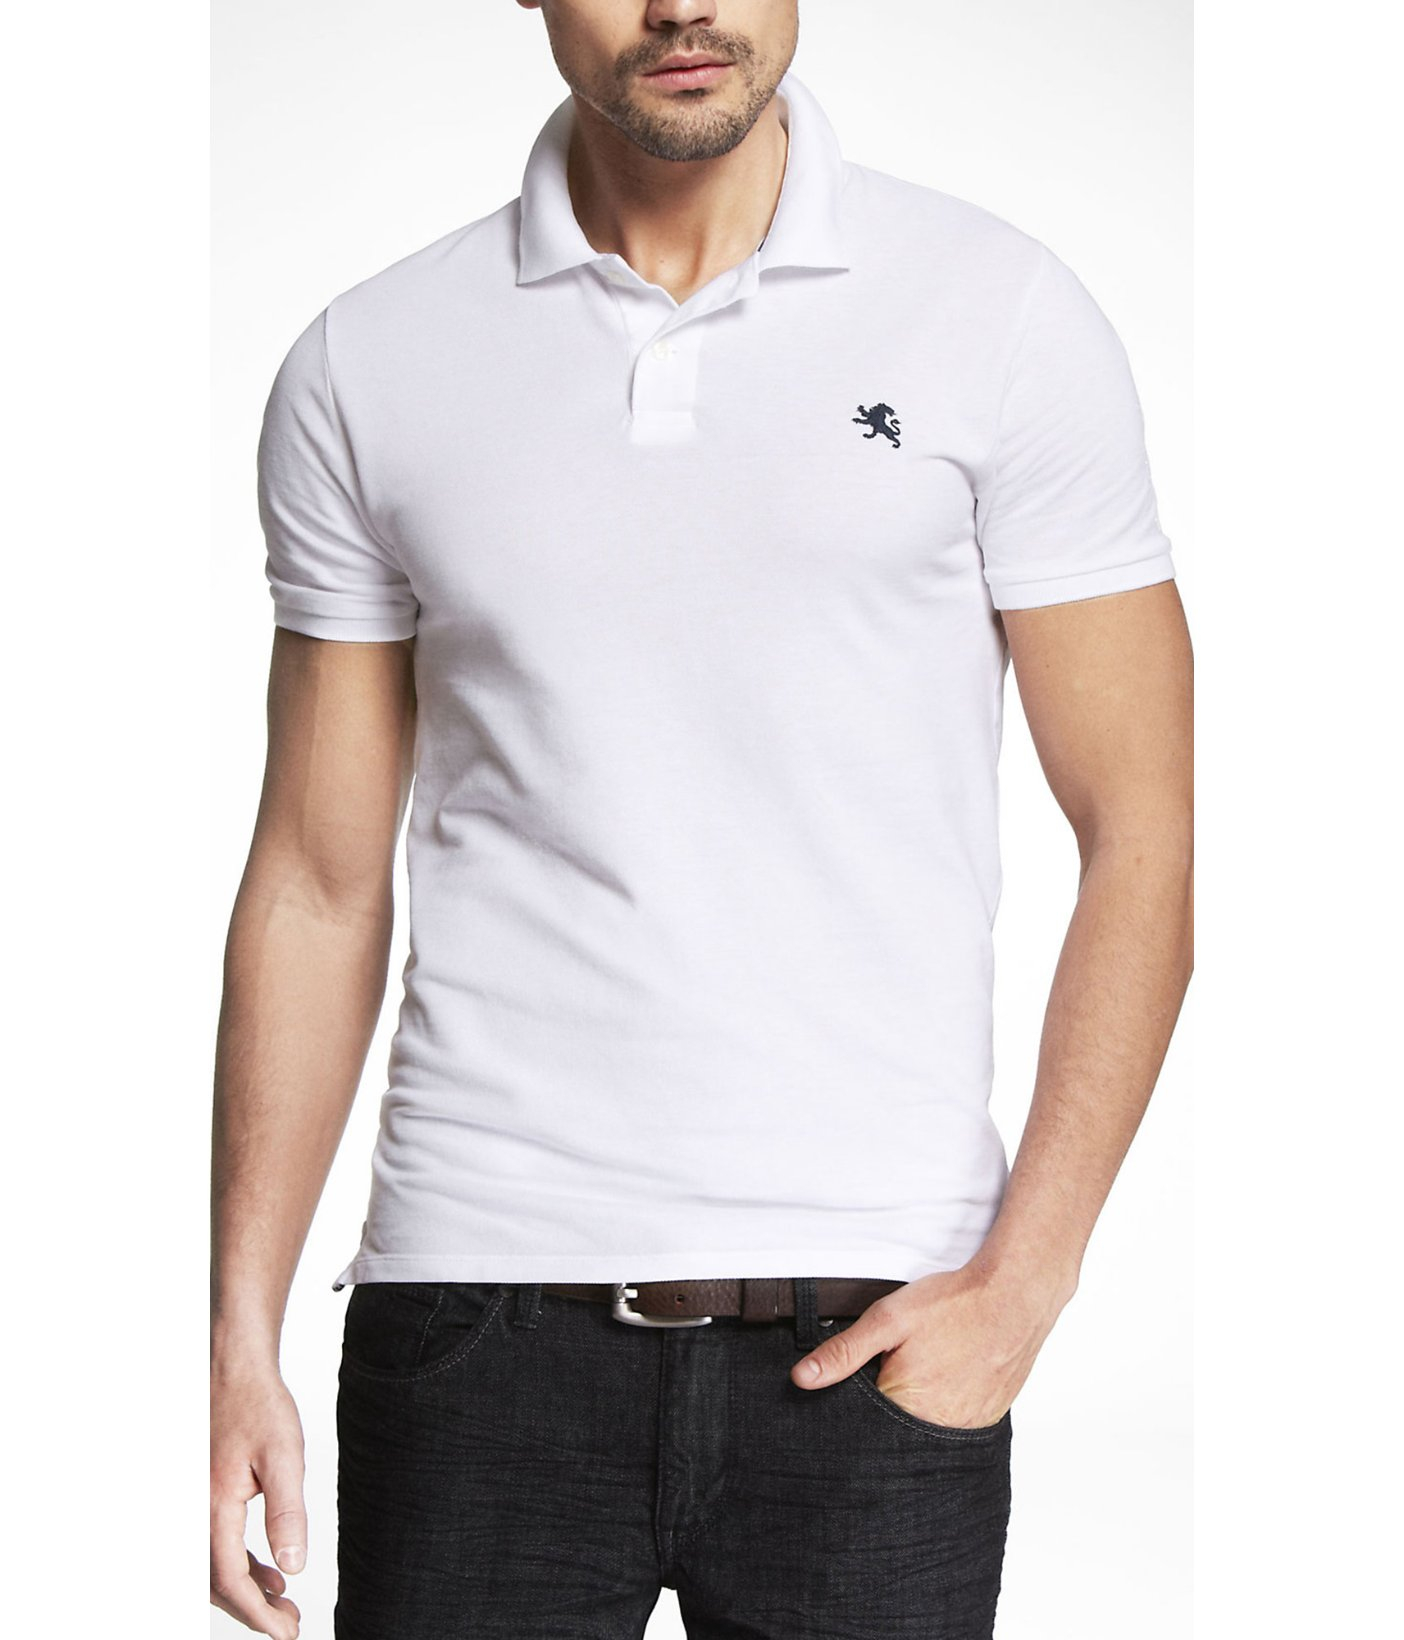 ... Lyst - Express Fitted Small Lion Pique Polo in White for Men 100%  genuine 8ce4e ... 03ae413b073c7